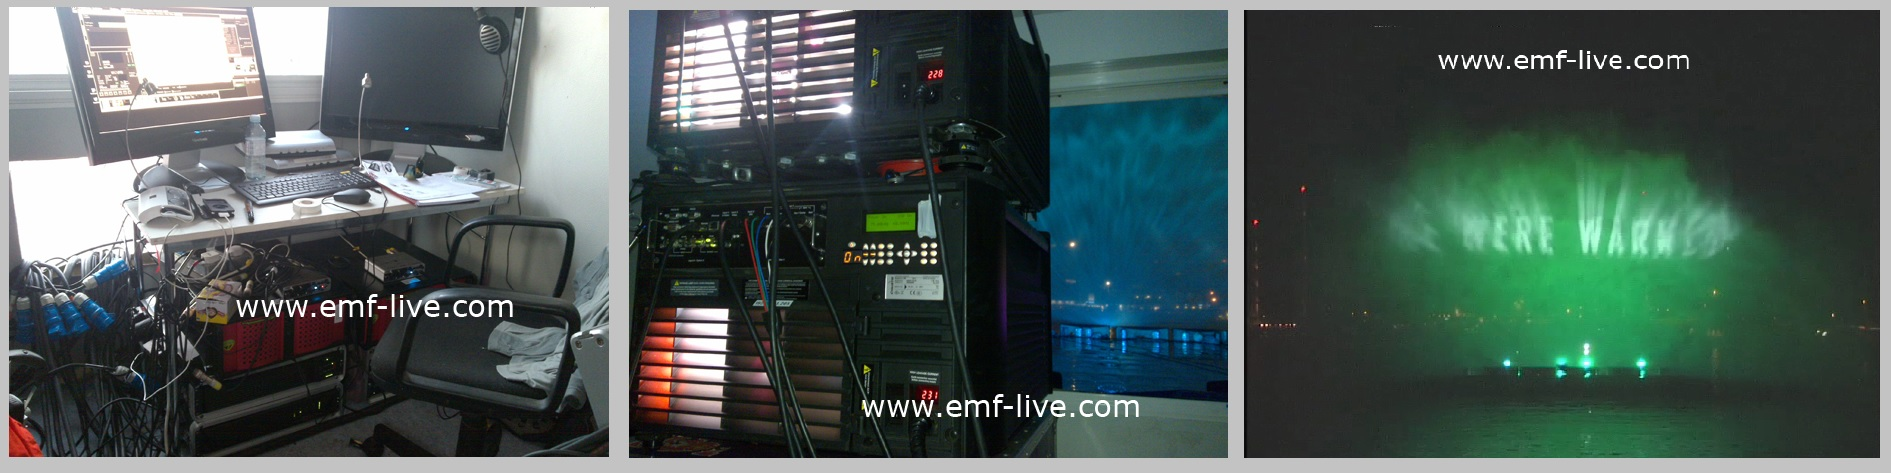 Waterscreen Projection Technical room for Film Premiere 2012 at Cannes Film Festival